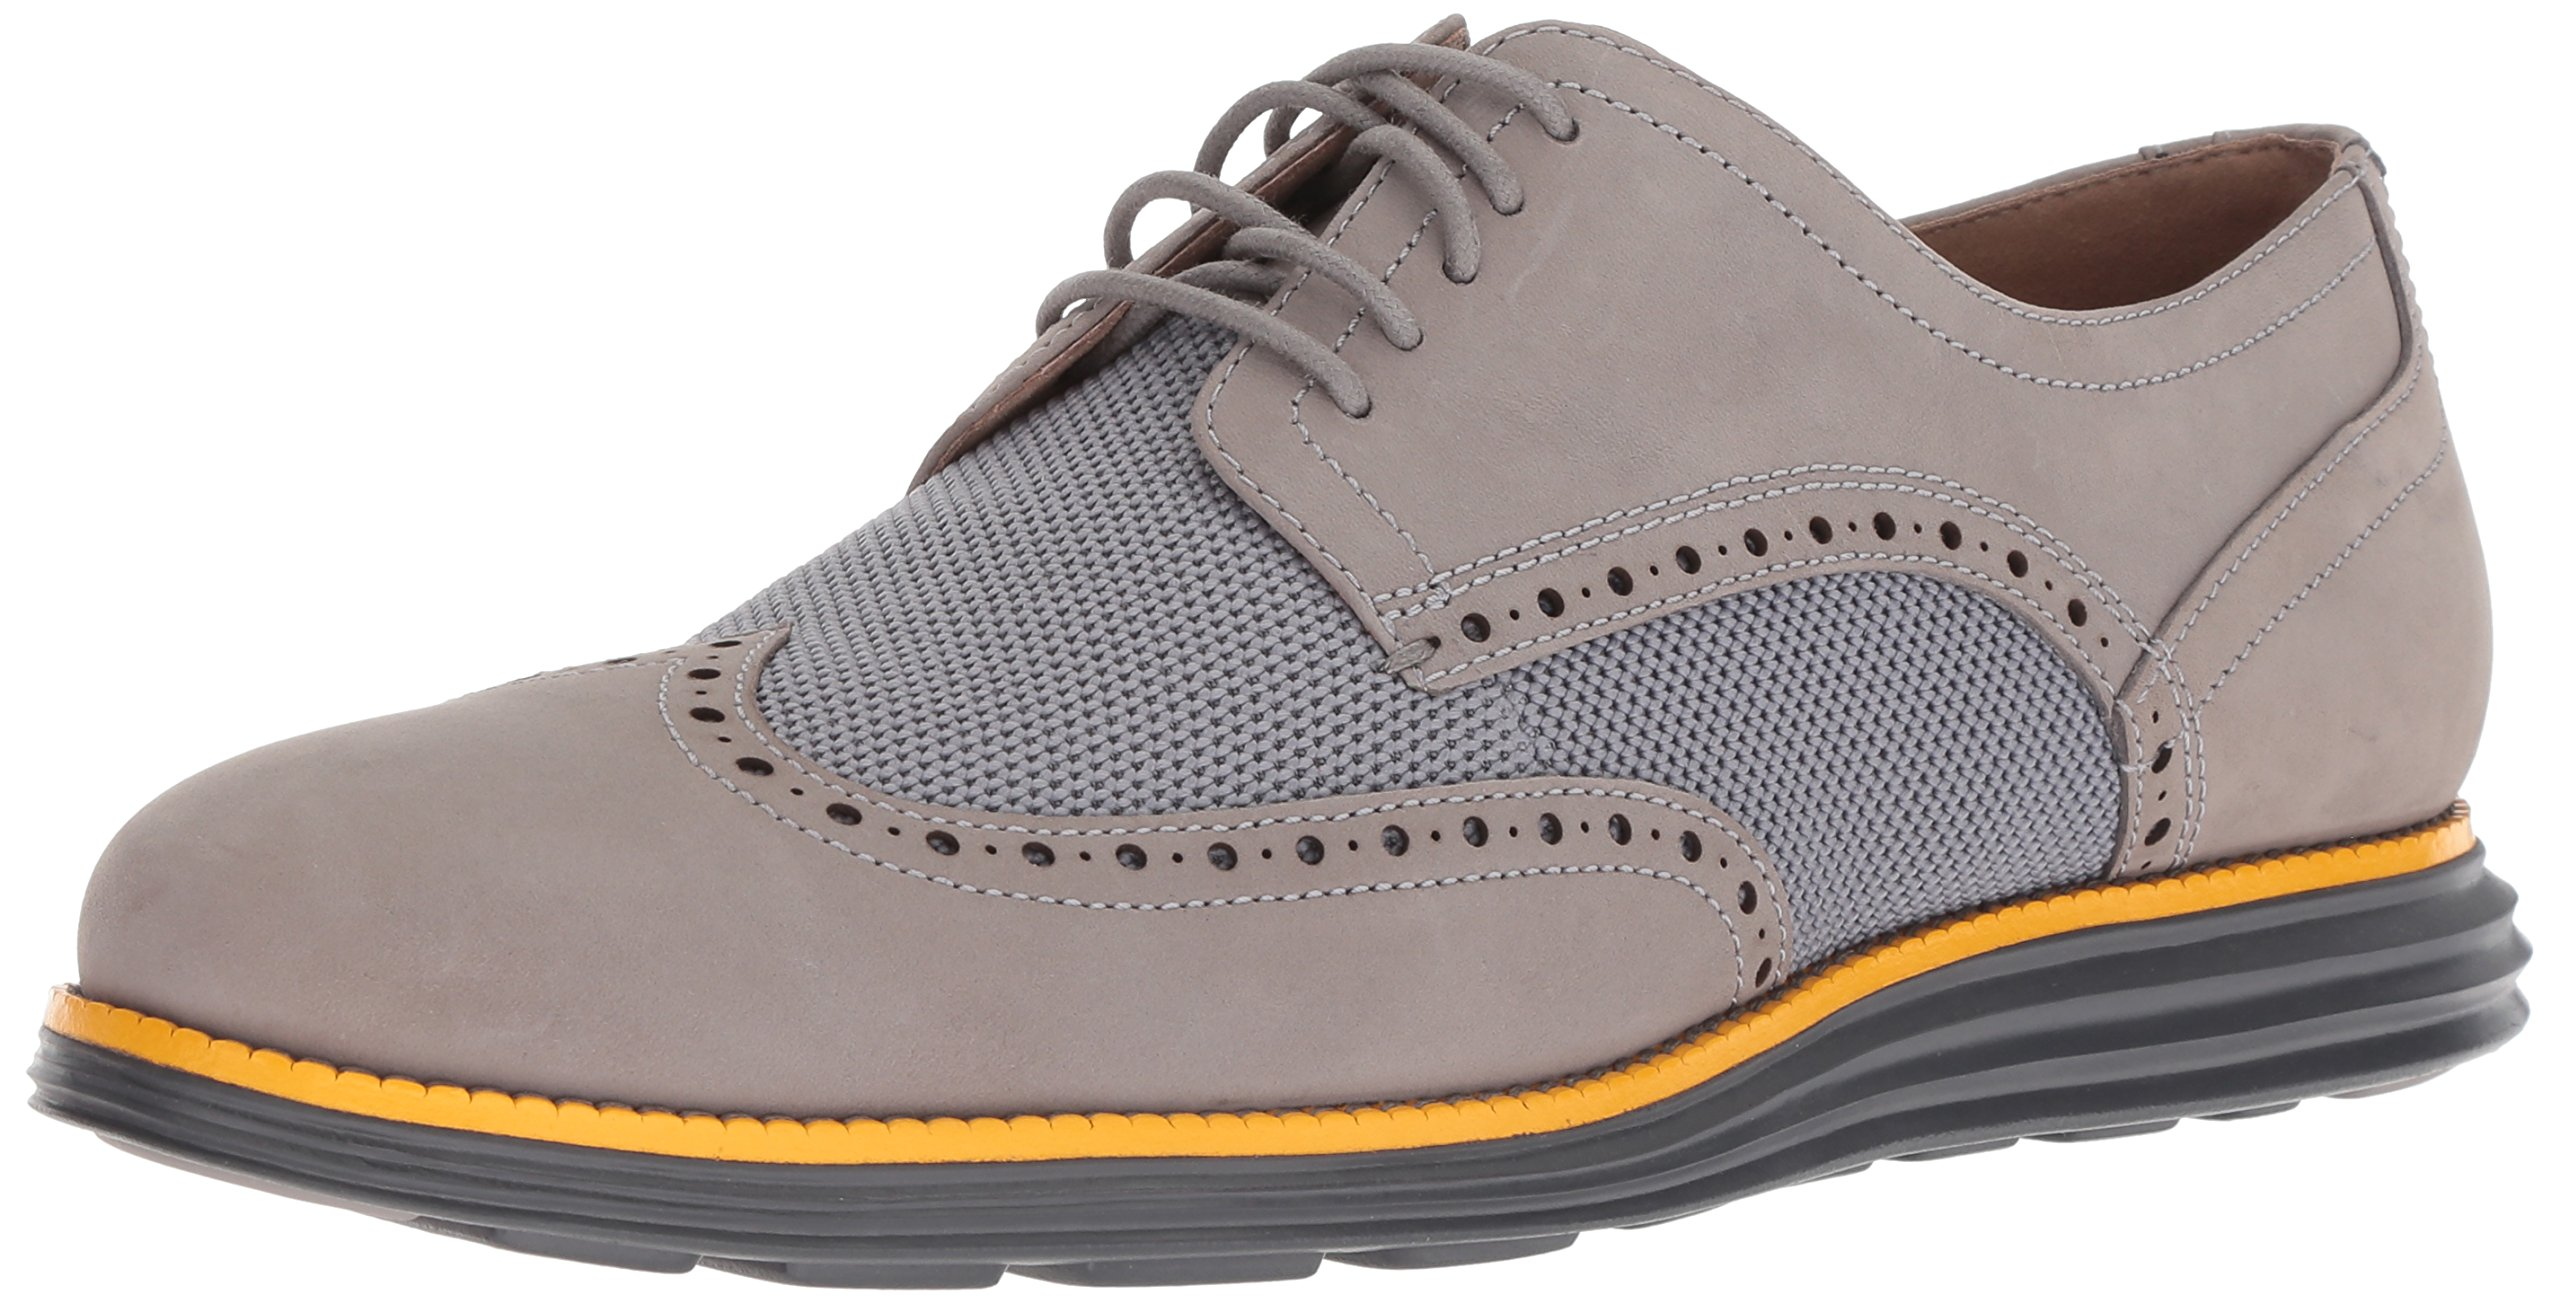 Cole Haan Men's Original Grand Shortwing Oxford, Ironstone Nubuck/Sunglow/Magnet, 11.5 W US